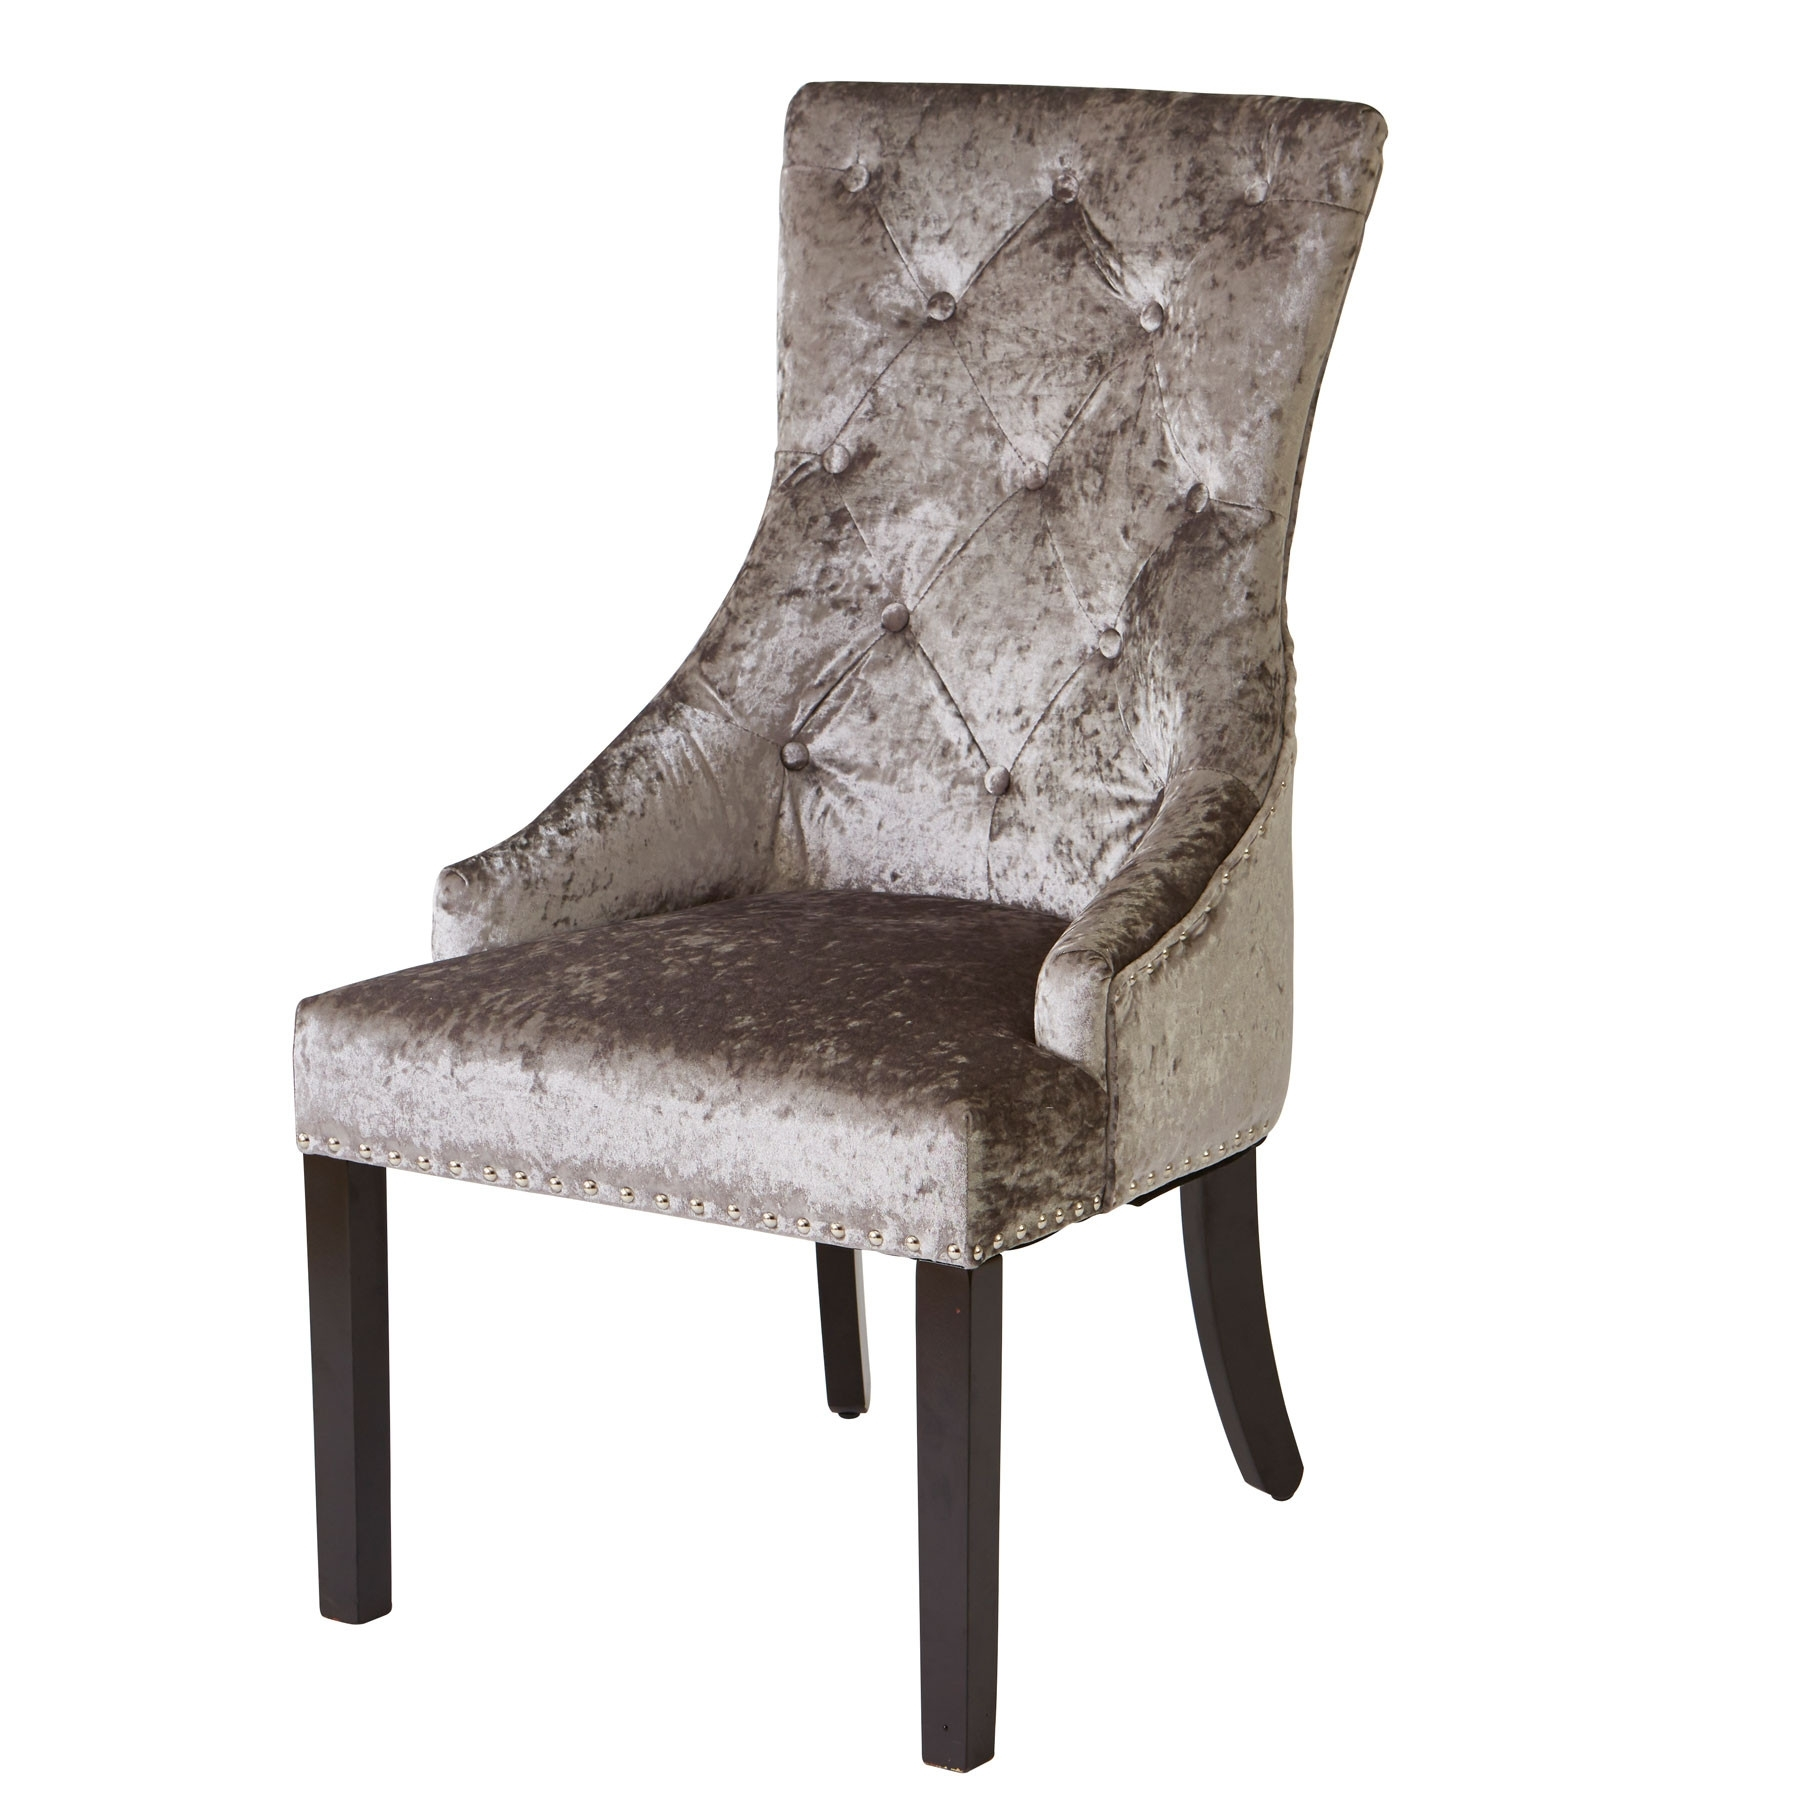 Most Recent Fabric Dining Chairs In Louis Silver Fabric Dining Chair With Knocker (Gallery 19 of 25)